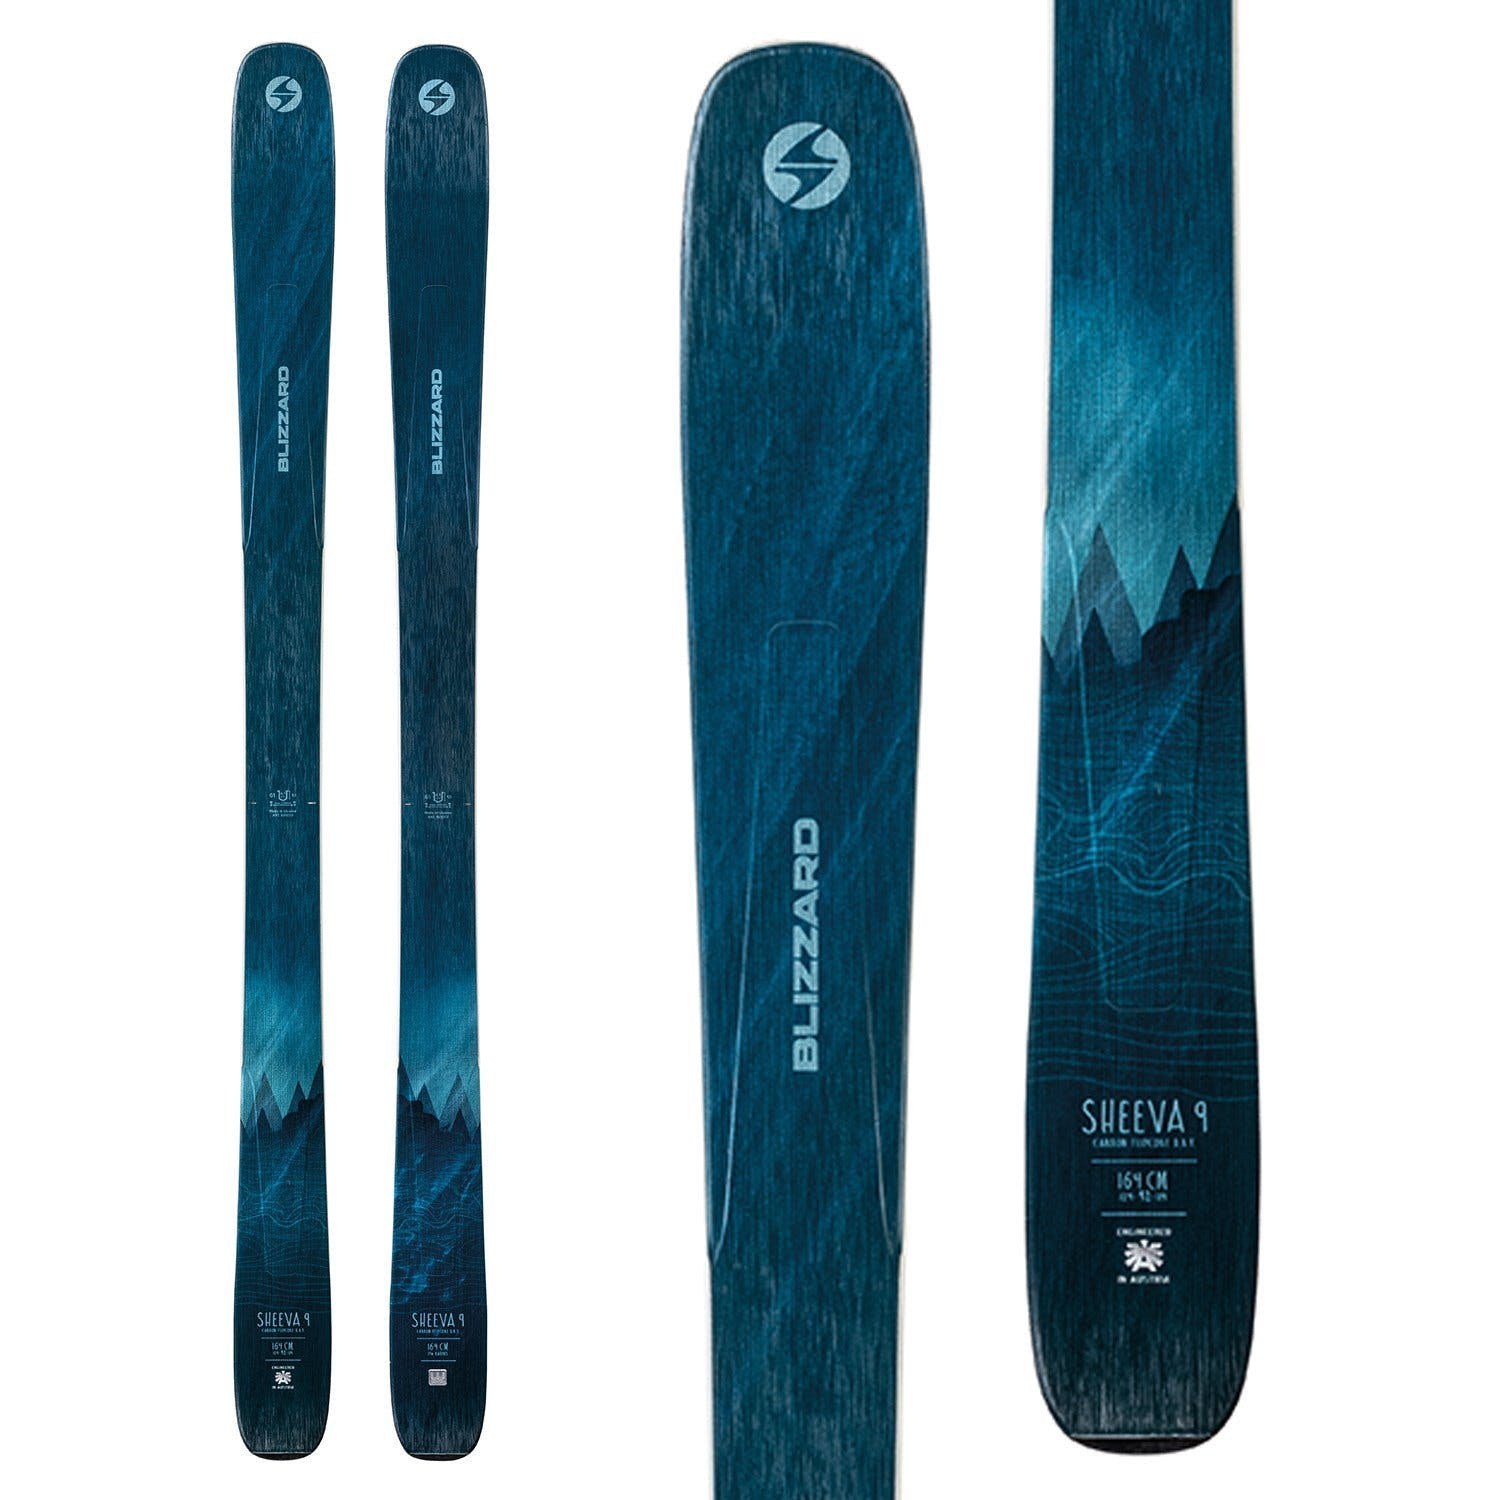 Blizzard Sheeva 9 Skis · 2021